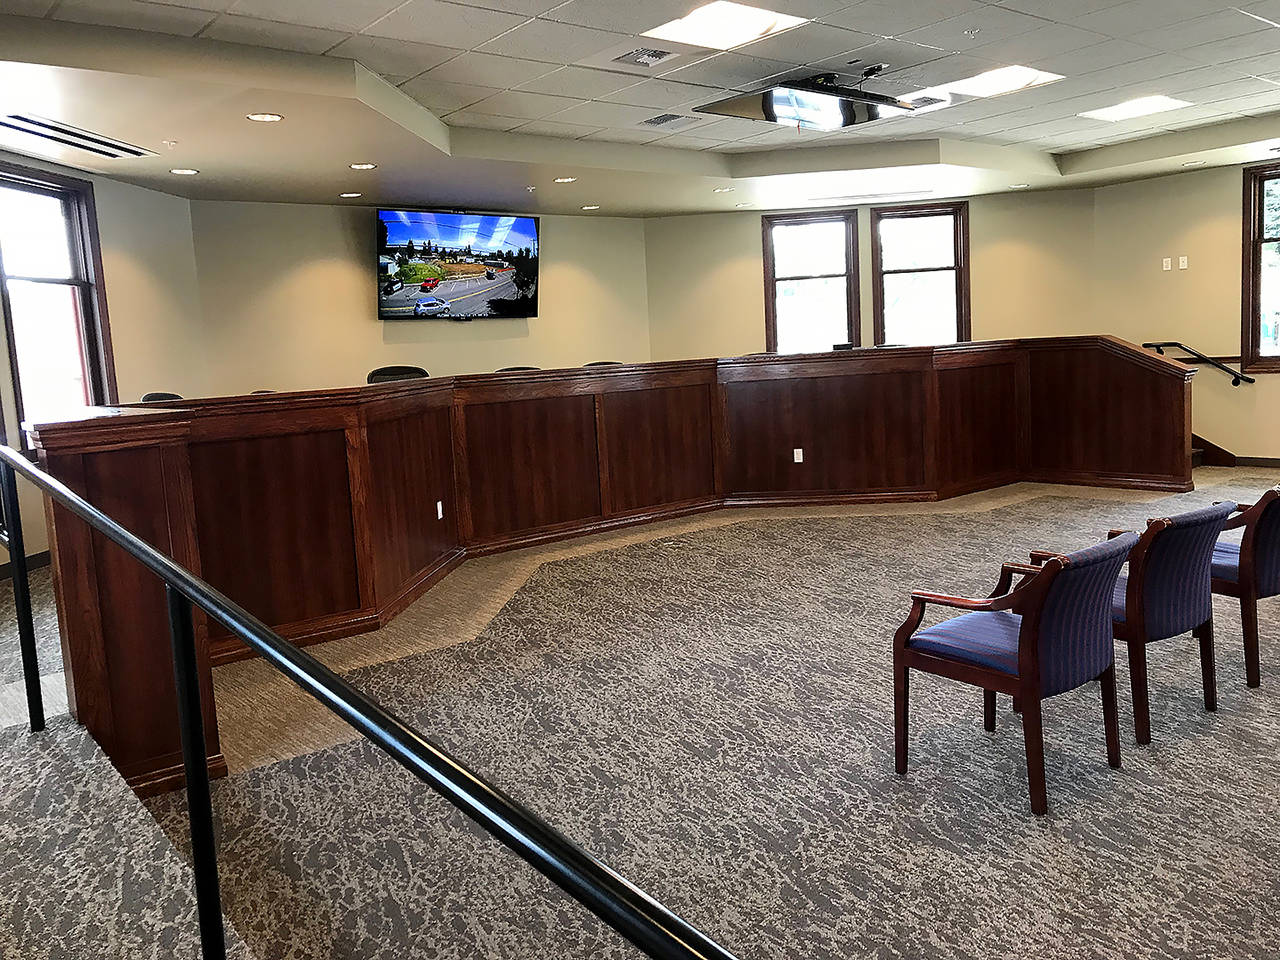 City Council chambers in the new Granite Falls City Hall. (Stephanie Davey / The Herald)